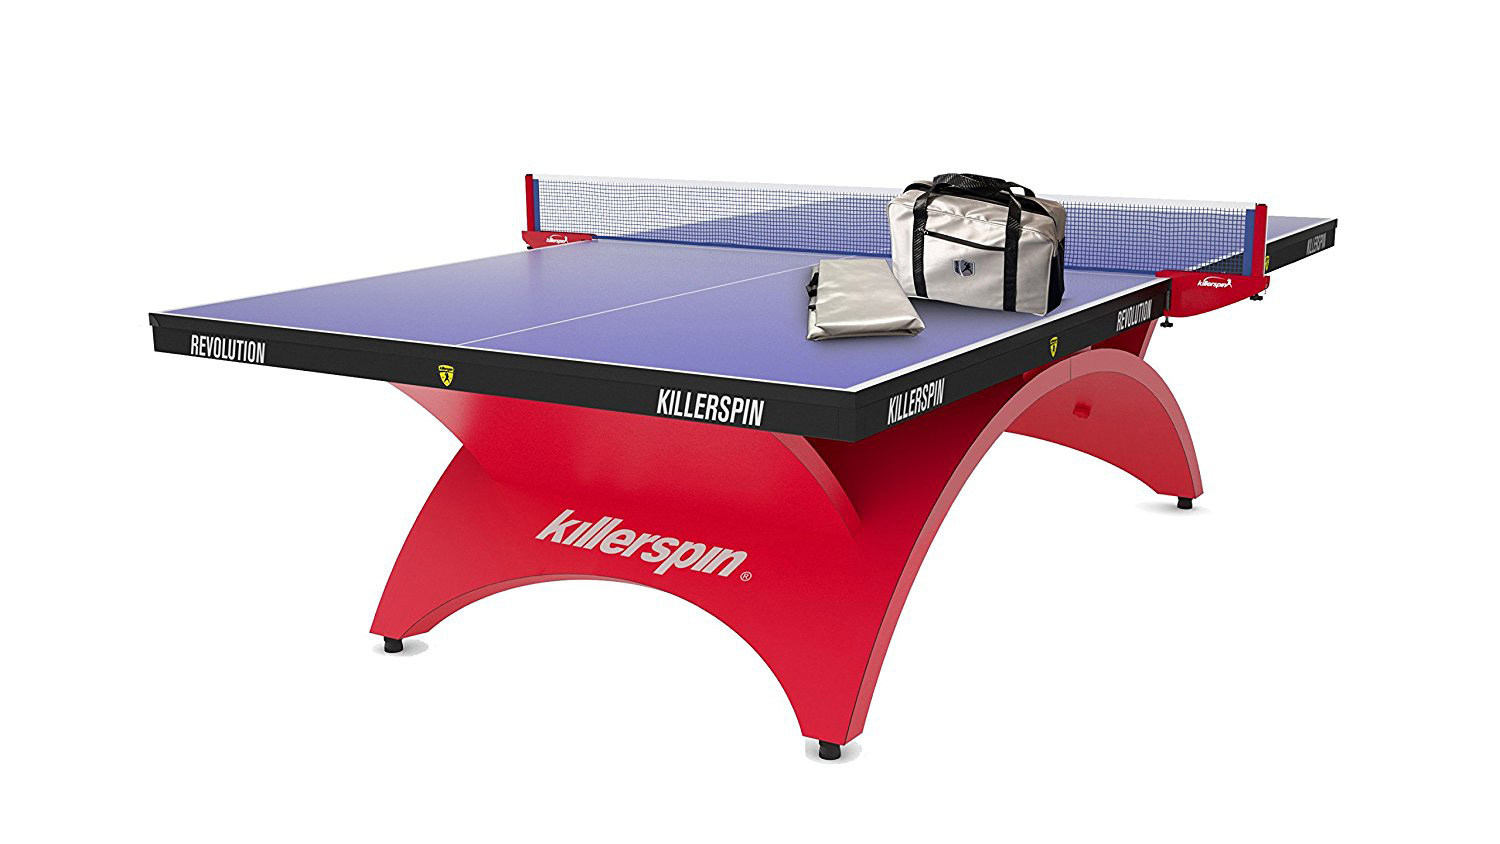 Killerspin-Revolution-Table-Tennis-Table